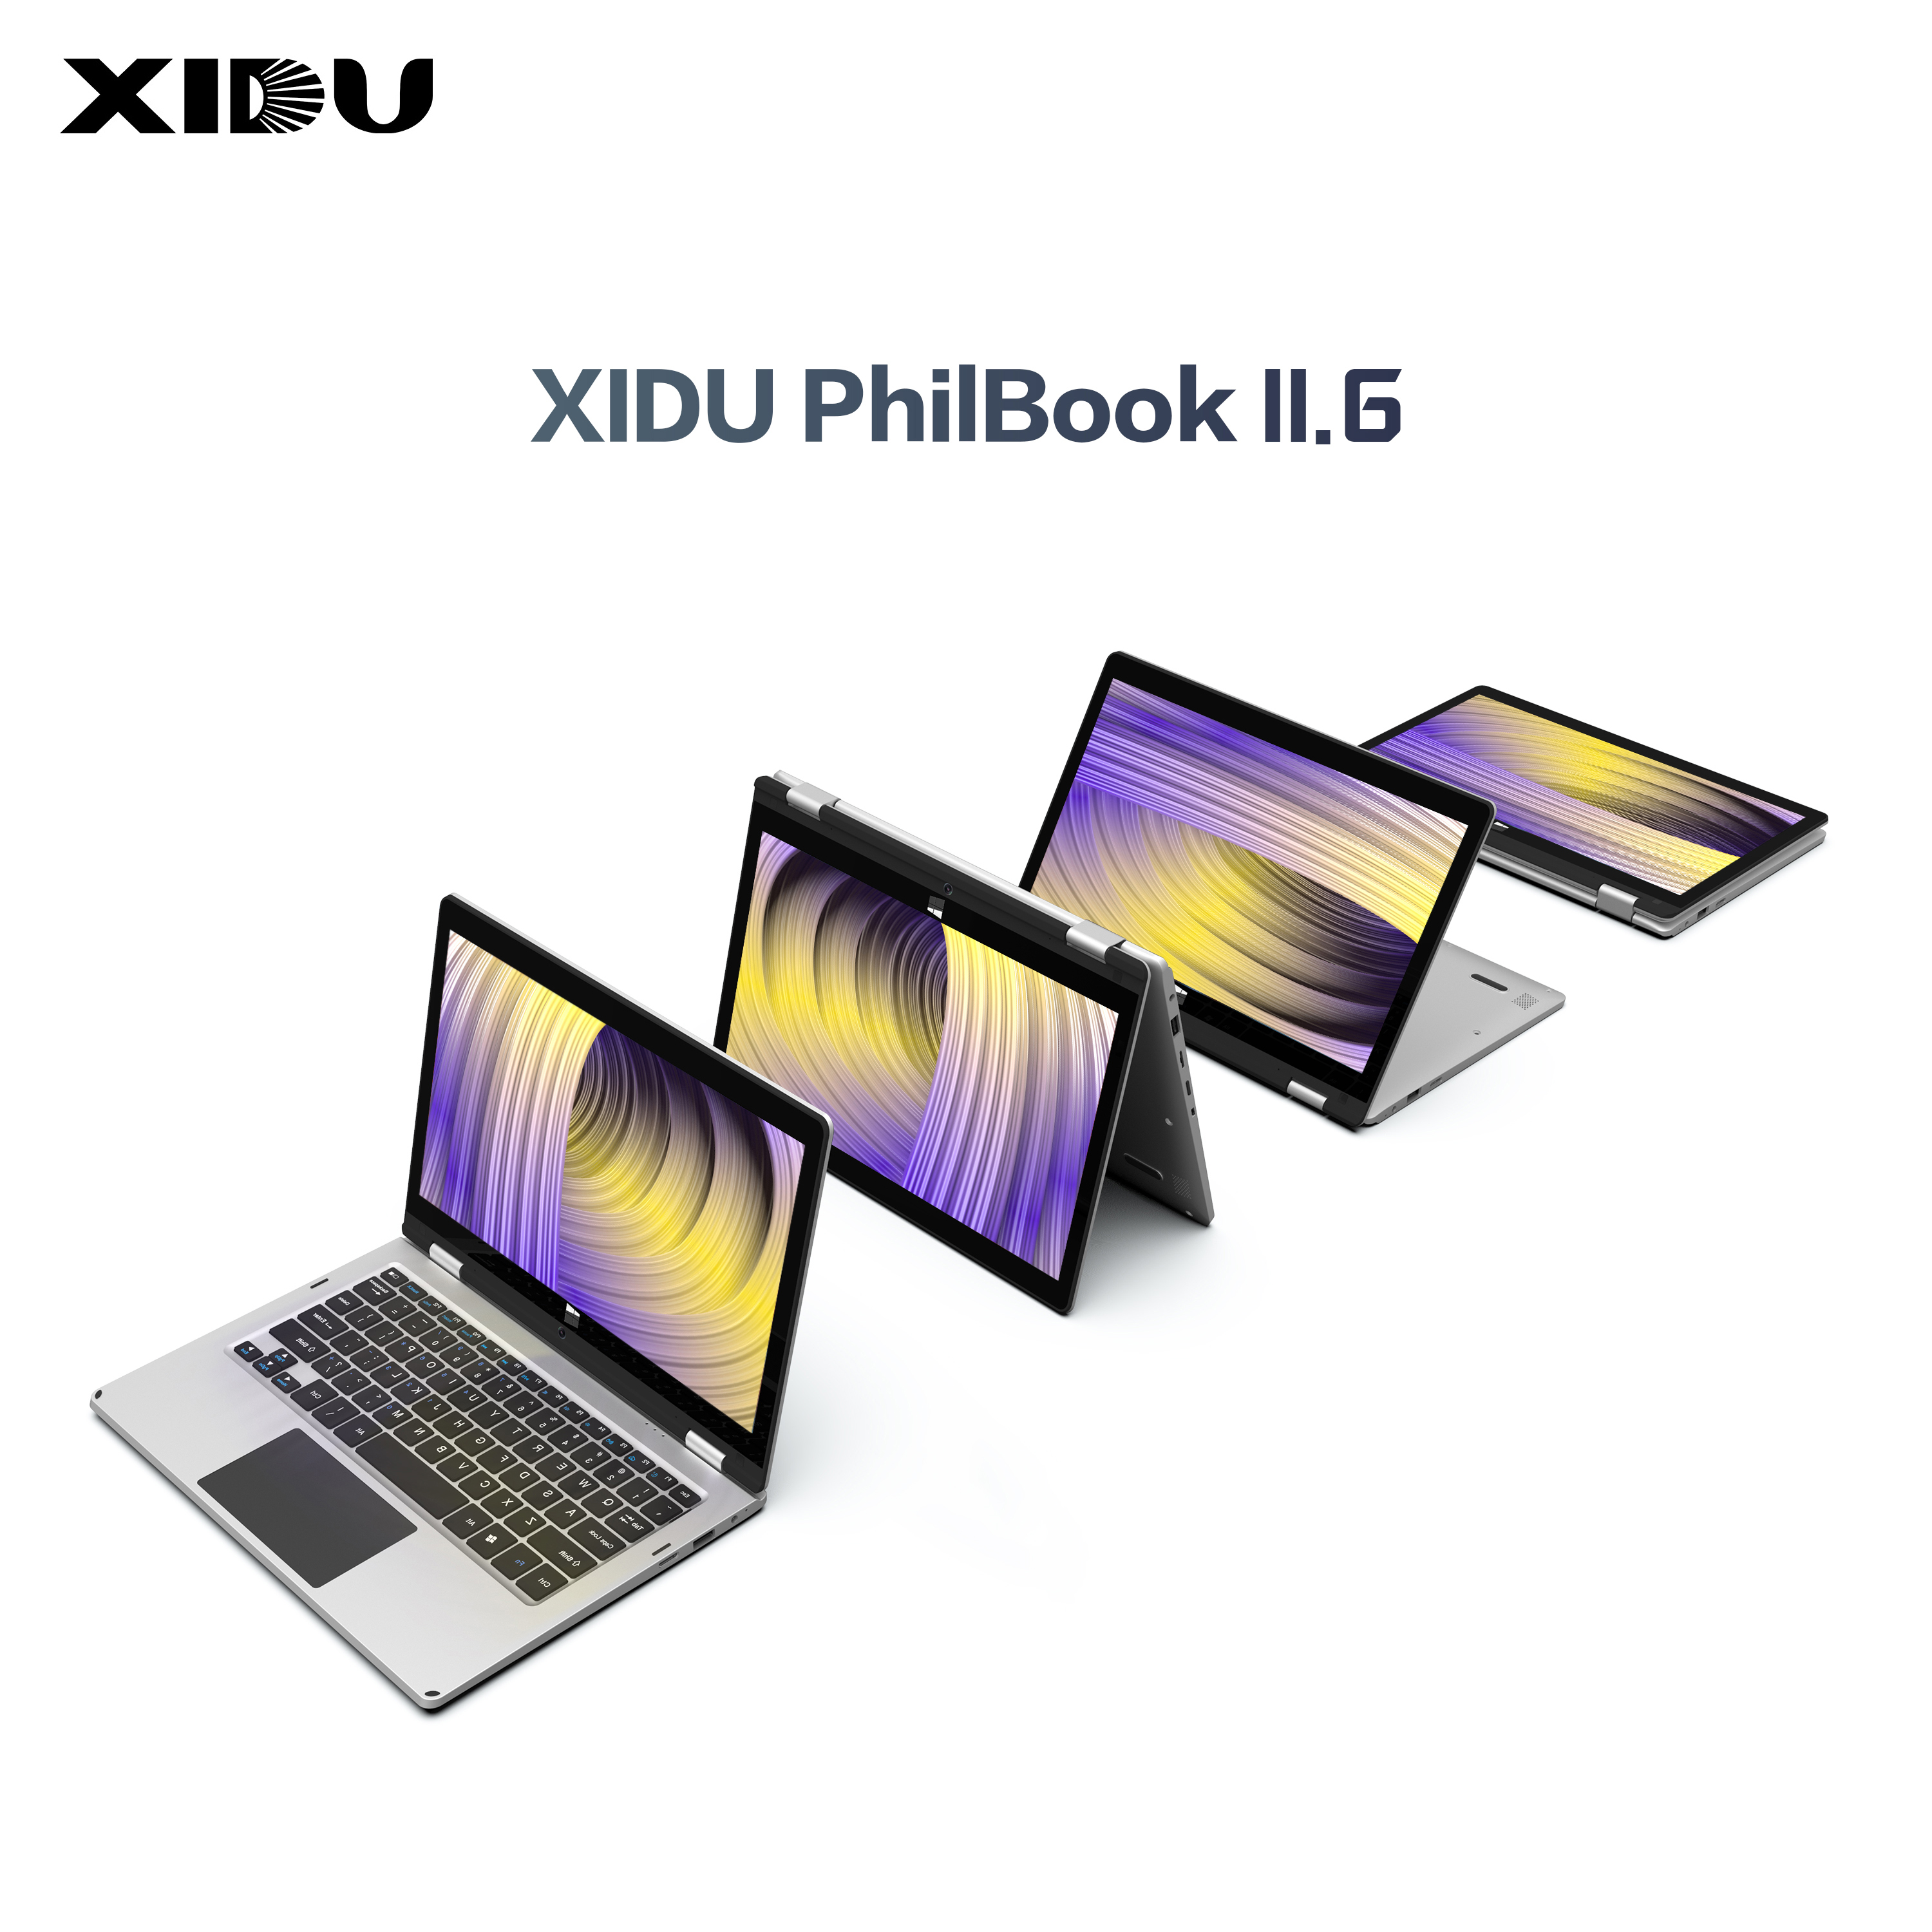 2019 XIDU PhilBook Laptop 11.6 Inch PC Tablet 2 in 1 notebook Touchscreen Windows 10 1080P screen Quad Core-in Laptops from Computer & Office